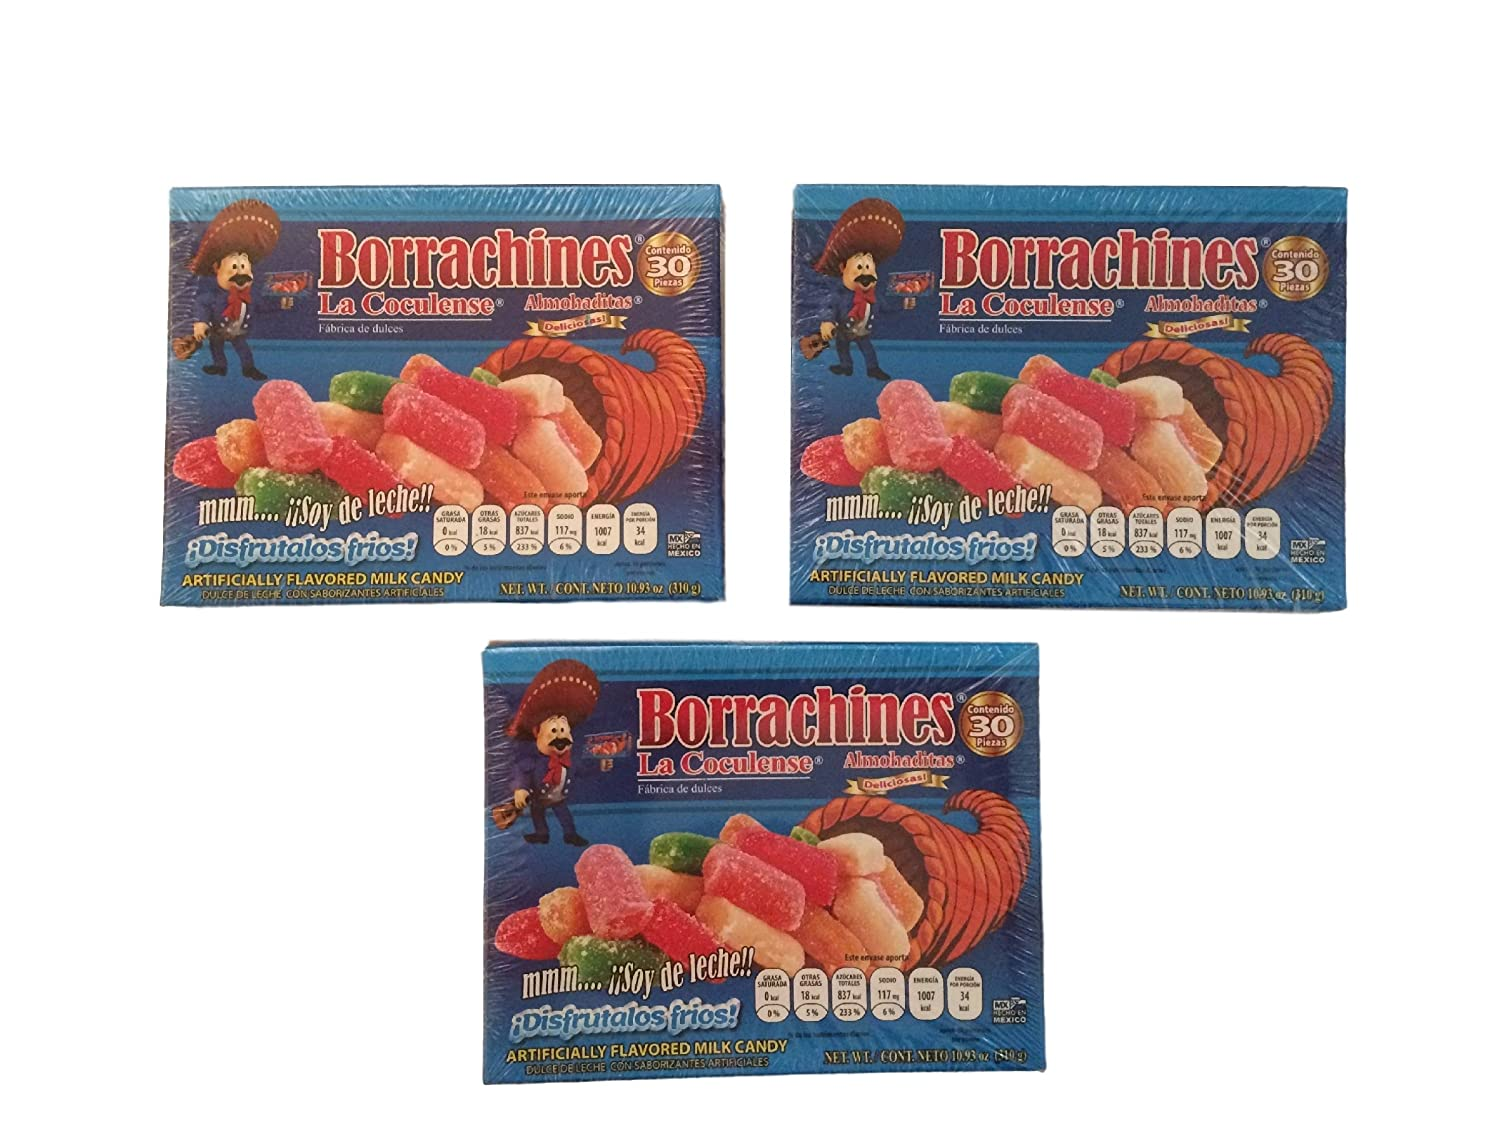 Amazon.com : La Coculense Borrachitos Mexican Milk Candy, Small, 30-Pcs Per Pack (Pack of 3) : Grocery & Gourmet Food